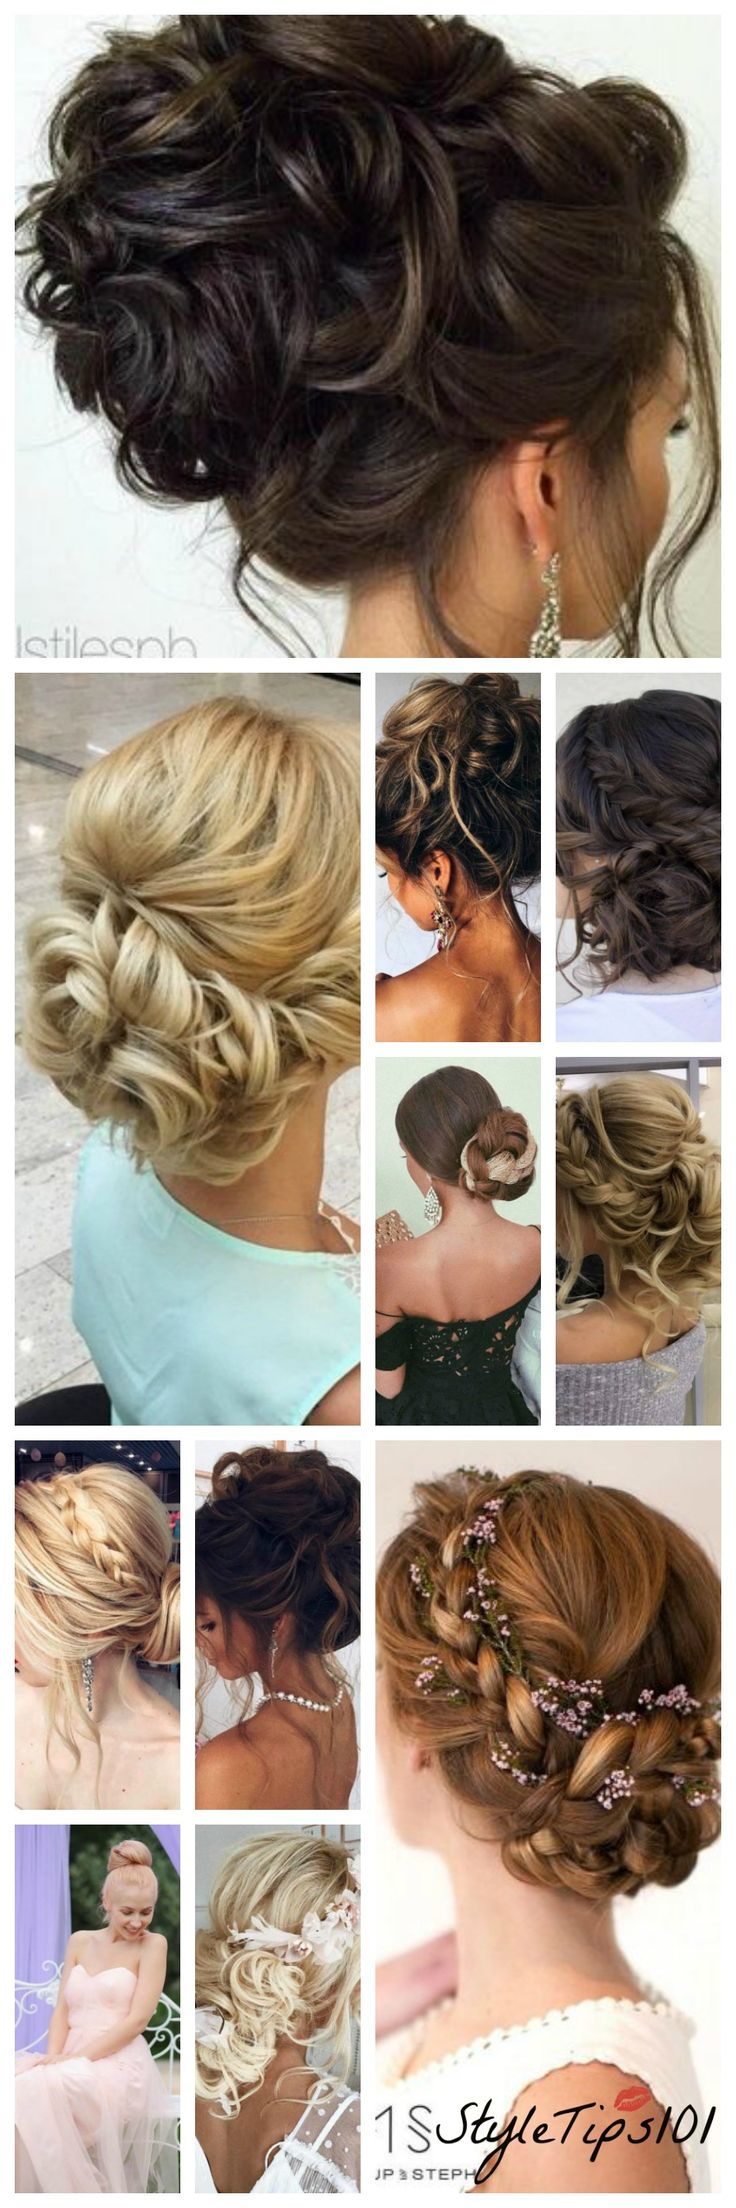 2017 06 homecoming hairstyles long hair - Gorgeous Prom Hairstyles You Can Copy